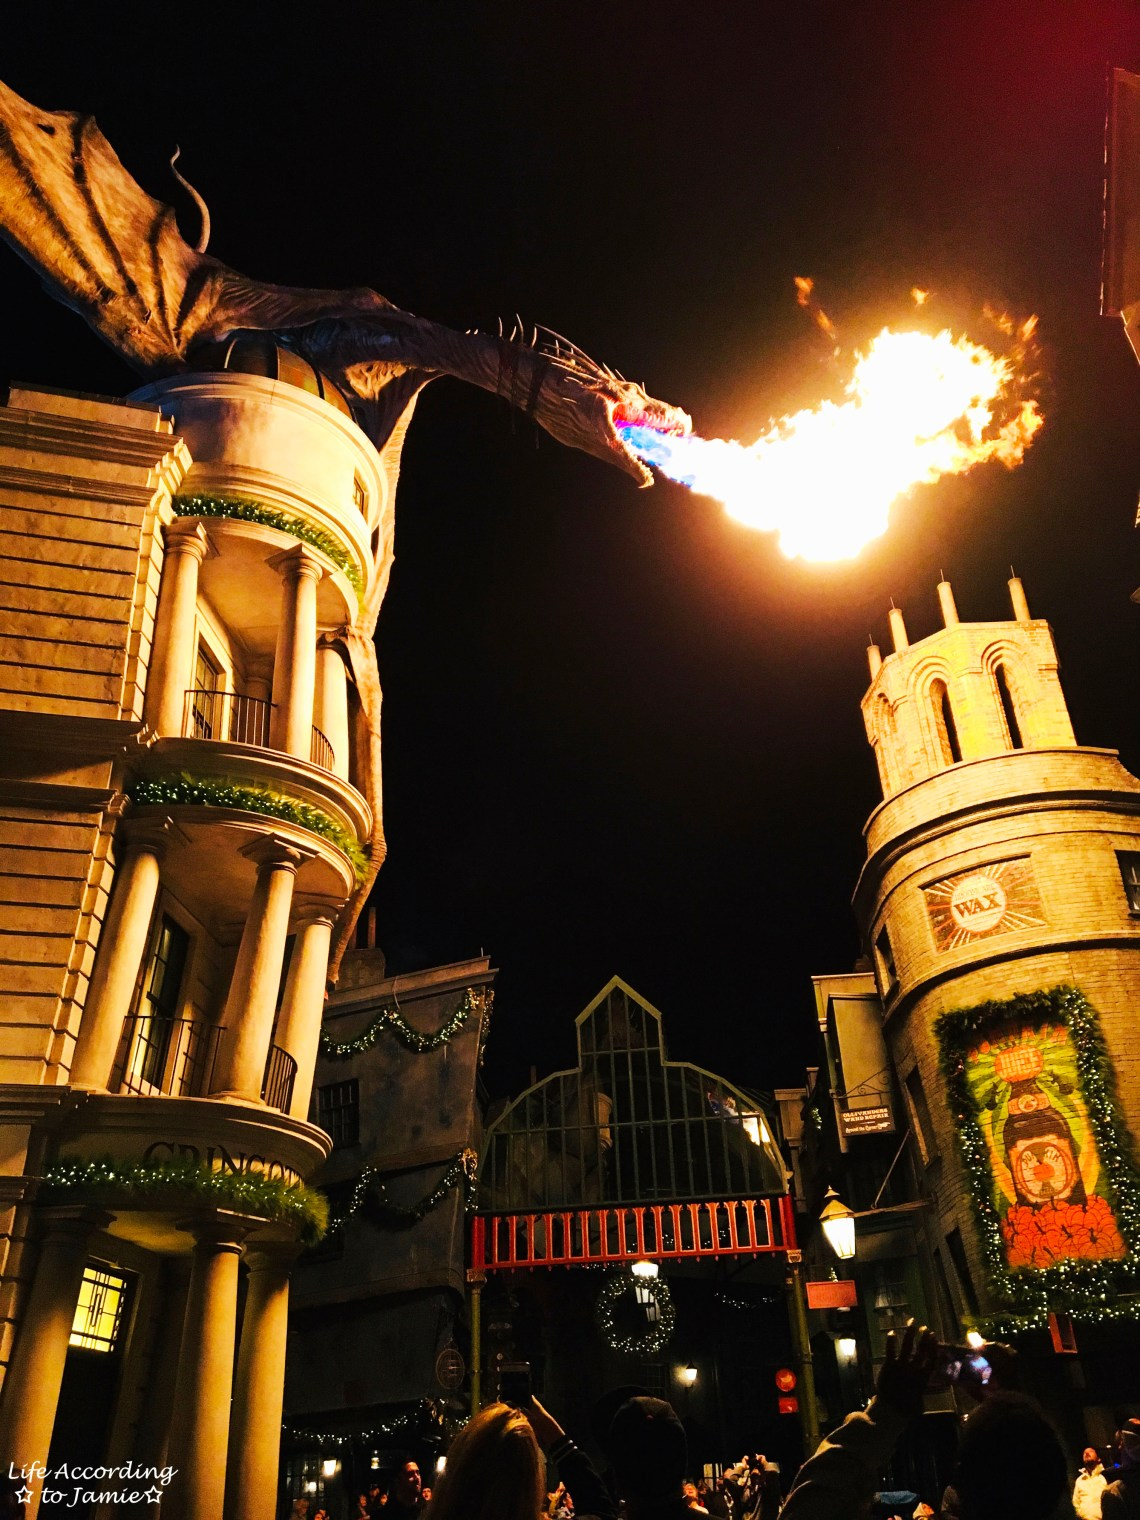 Diagon Alley - Dragon at night